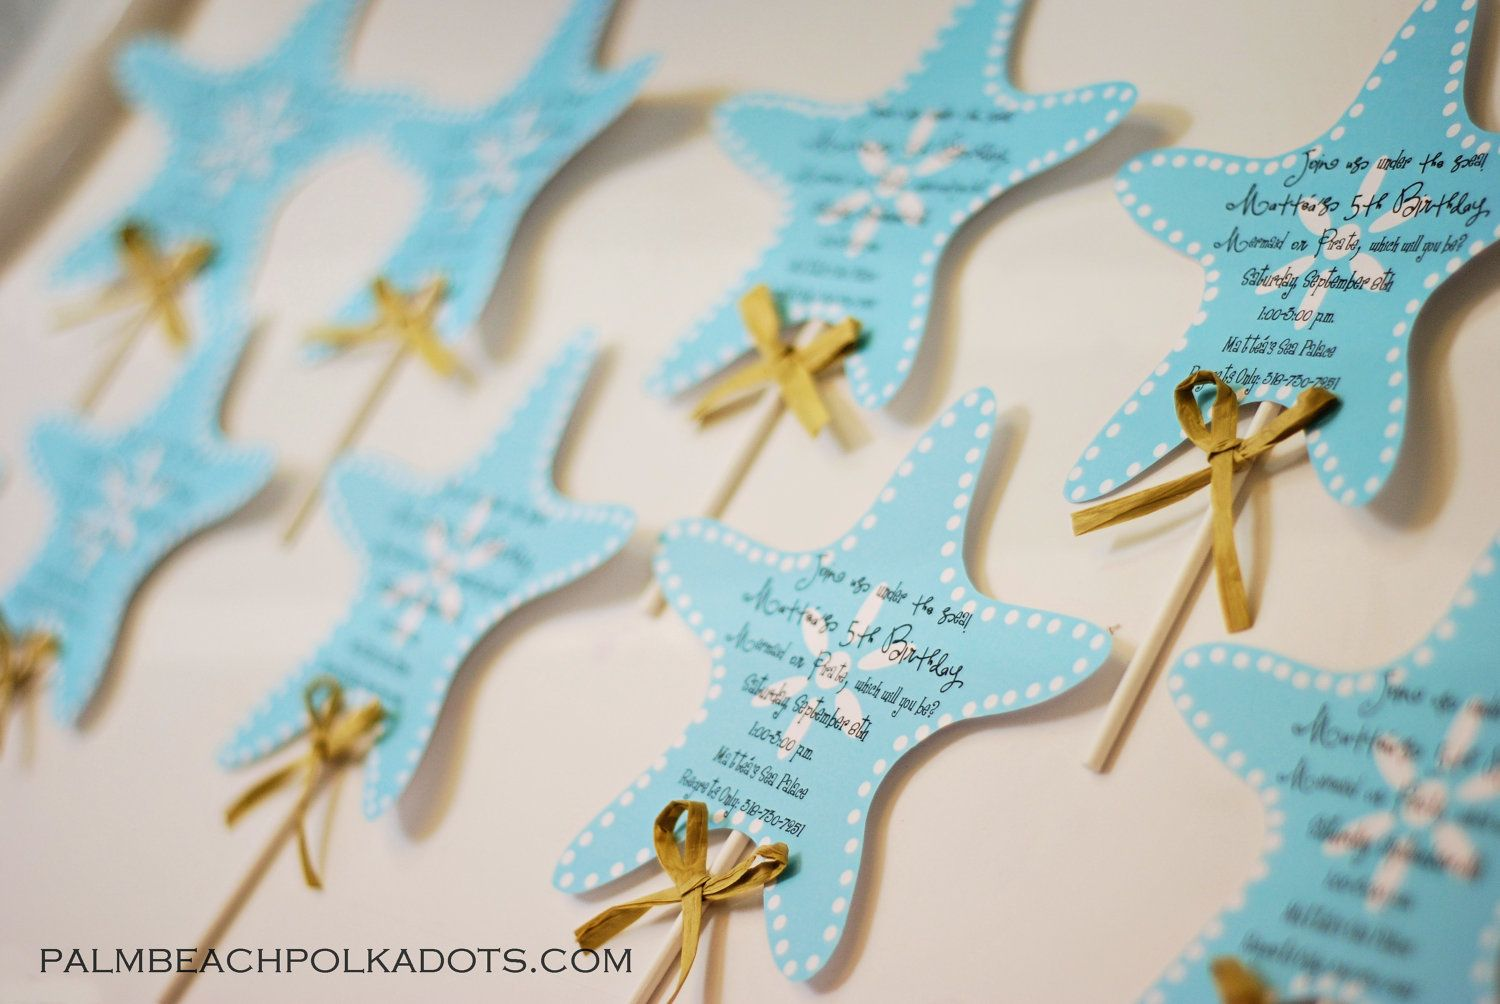 handmadest birthday party invitations%0A Under the Sea Starfish Wand Birthday Invitation         via Etsy